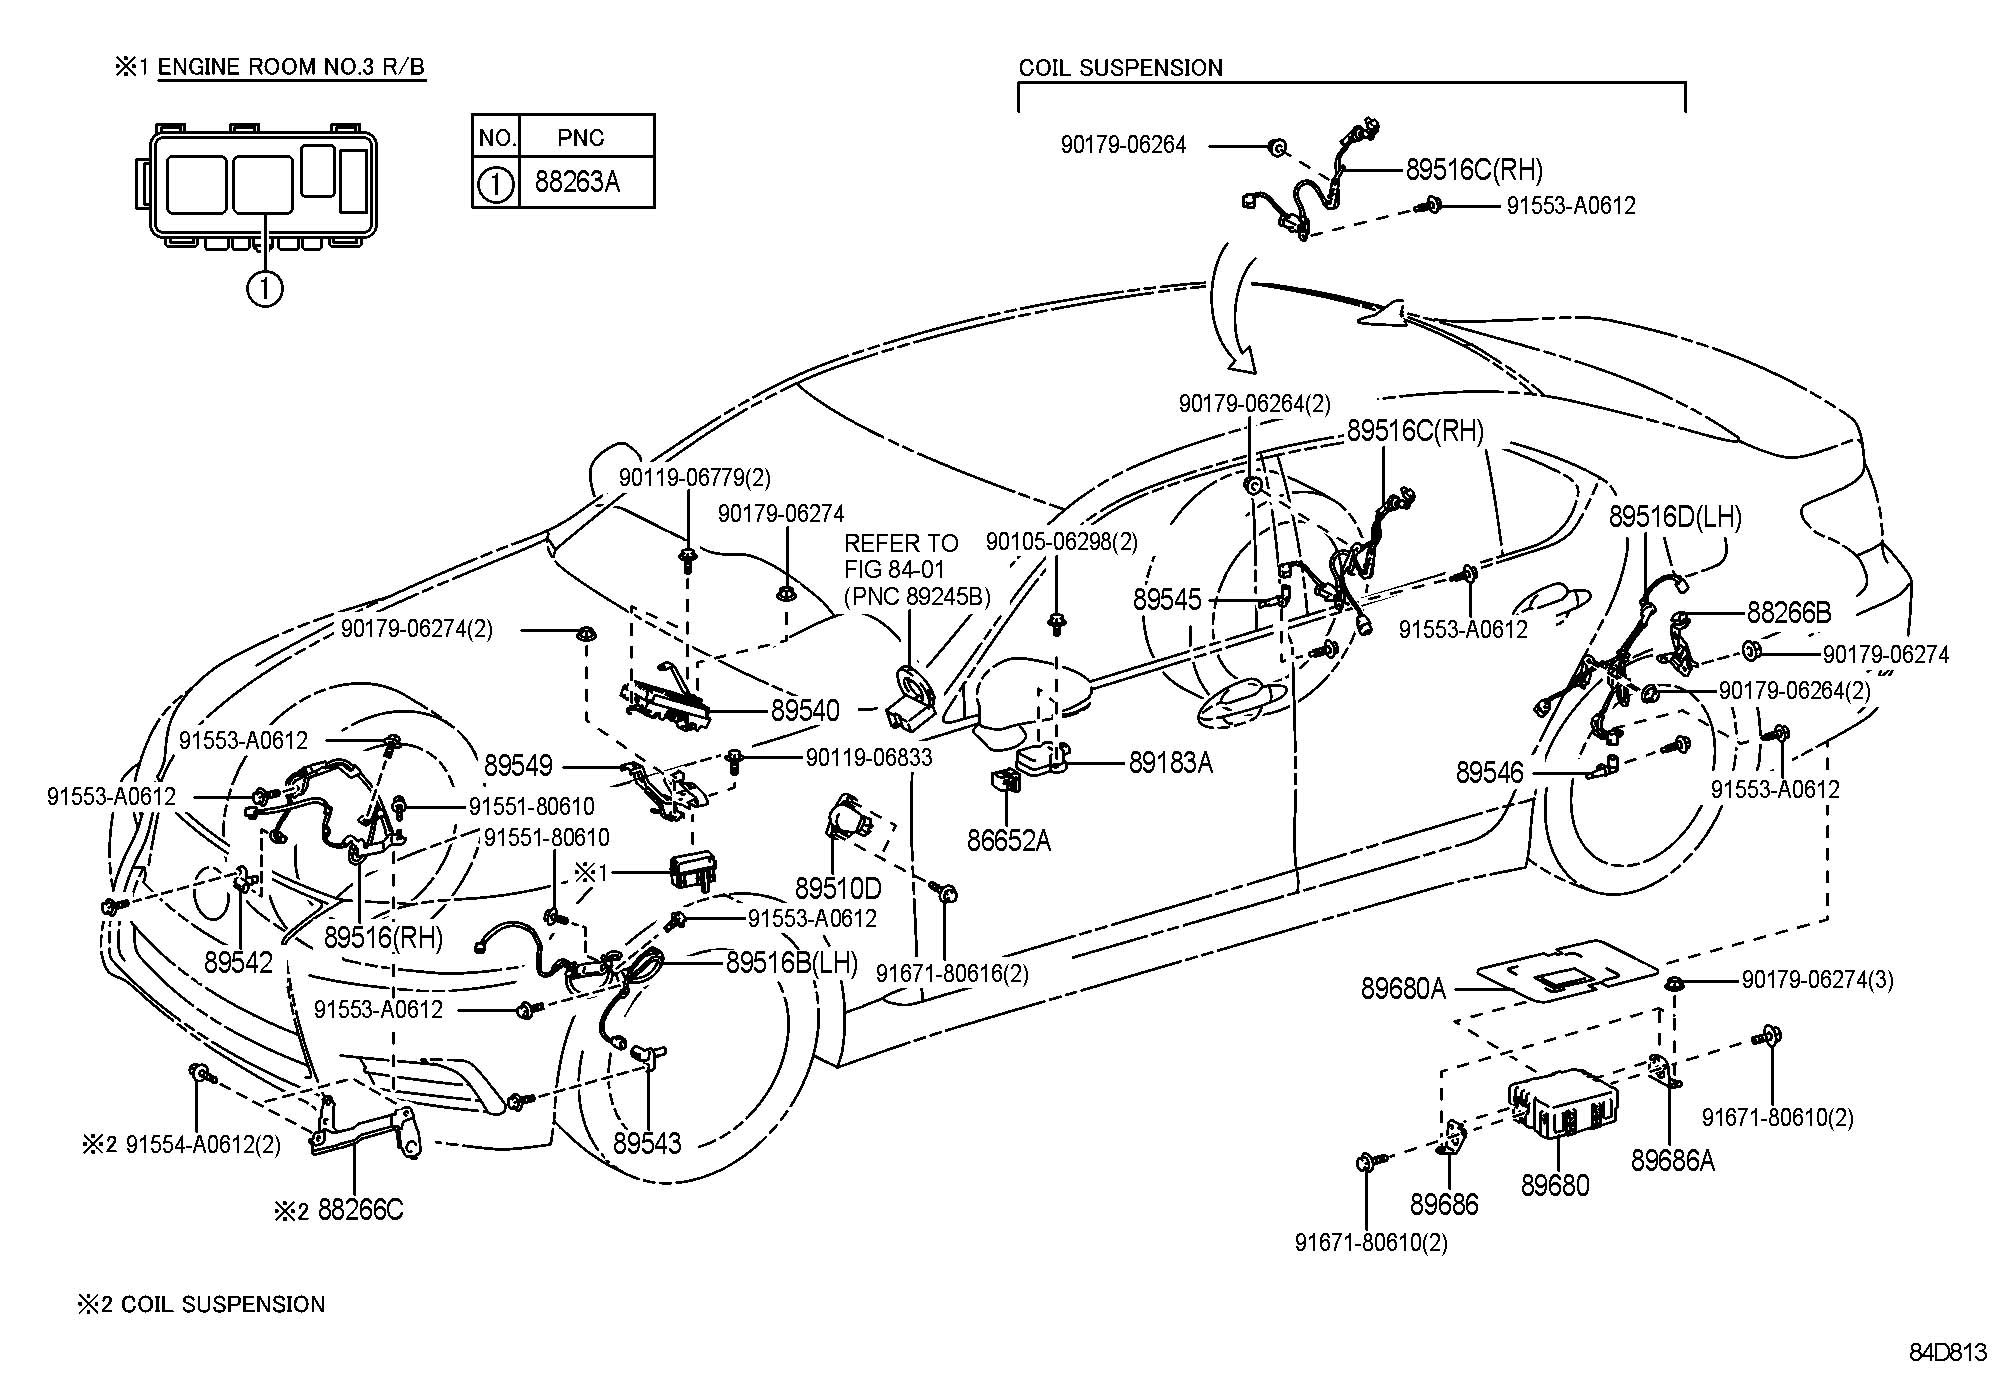 Lexus Rx330 Body Parts Diagram Manual Wiring Diagrams Rx300 Headlight Free Engine Image For User 330